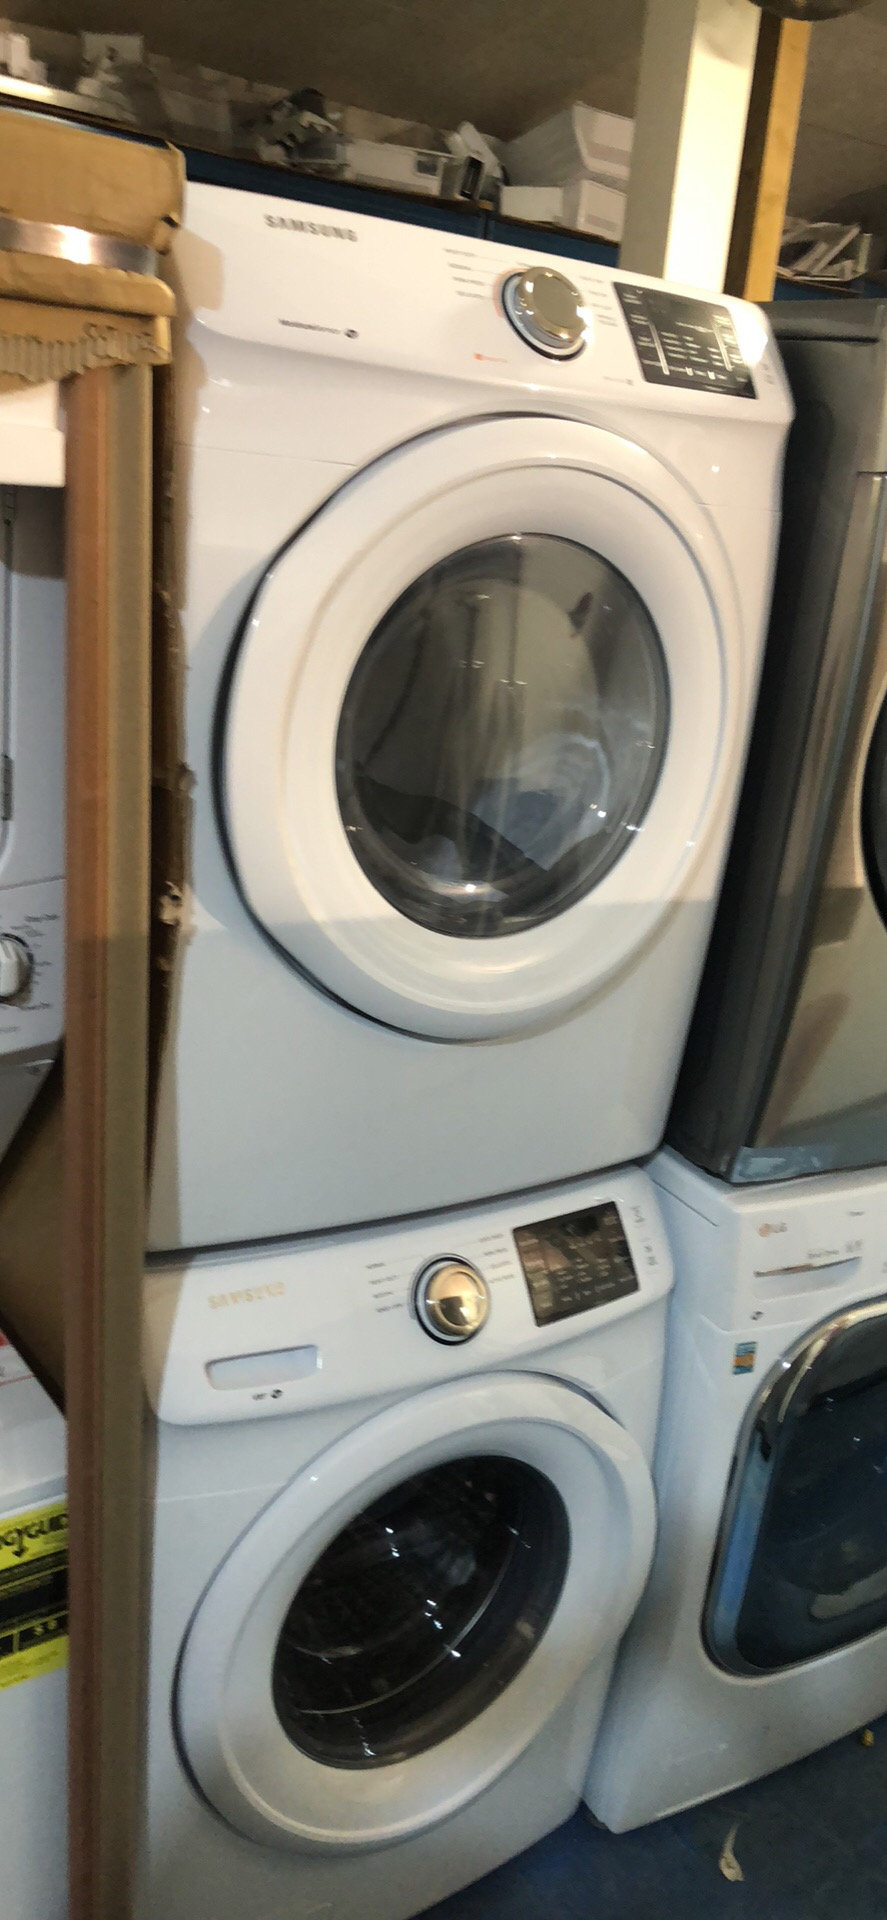 New Washer And Dryer 27 Samsung Brand New Open Box Stackable Washer Dryer Set With 1 Year Warranty